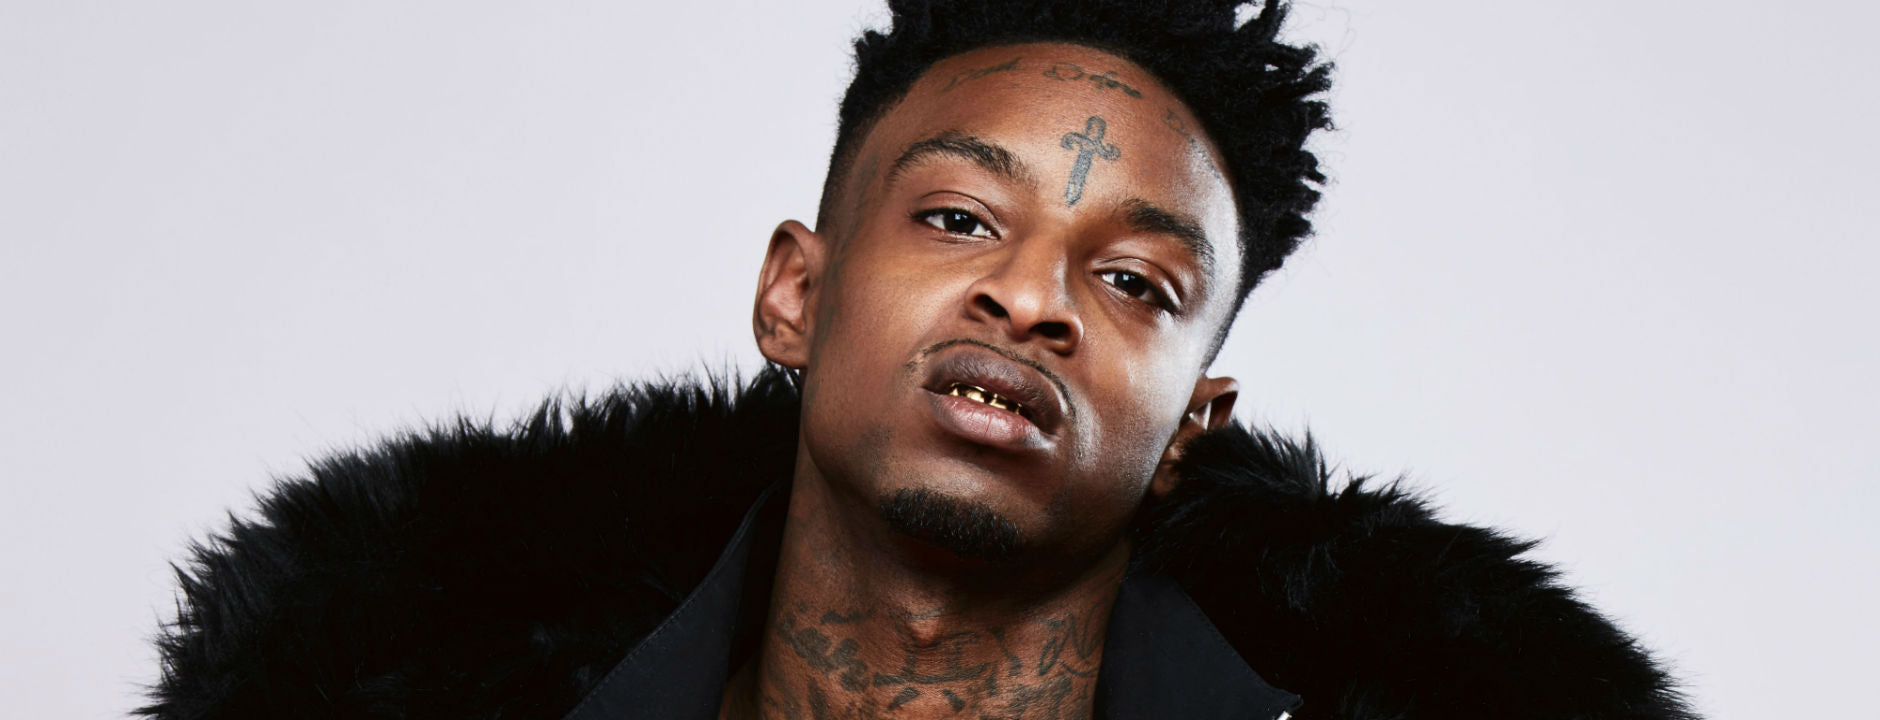 Rapper 21 Savage Has Some Financial Advice